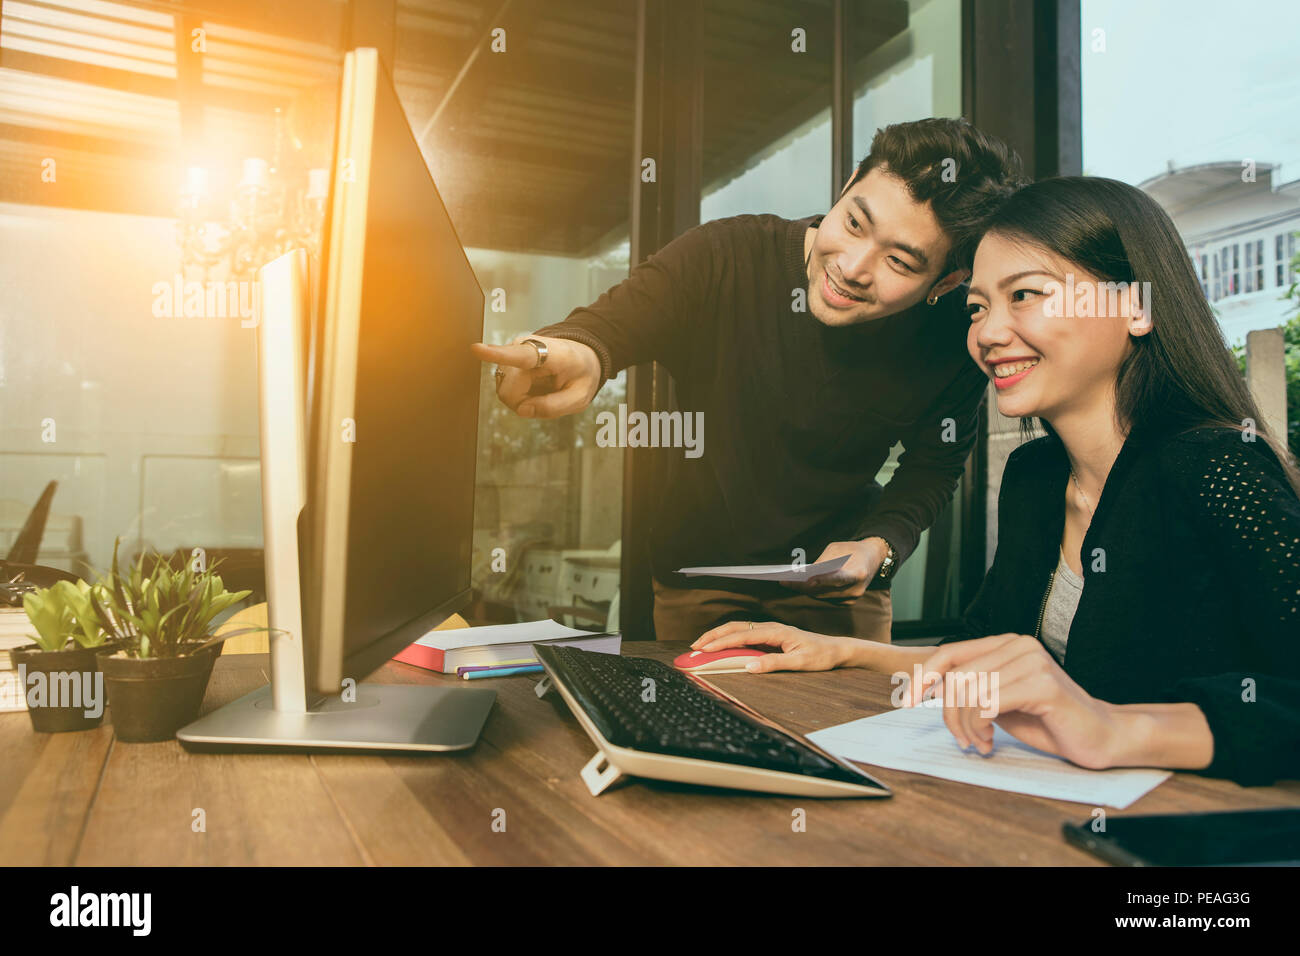 asian younger freelance man and woman working on computer at home office - Stock Image